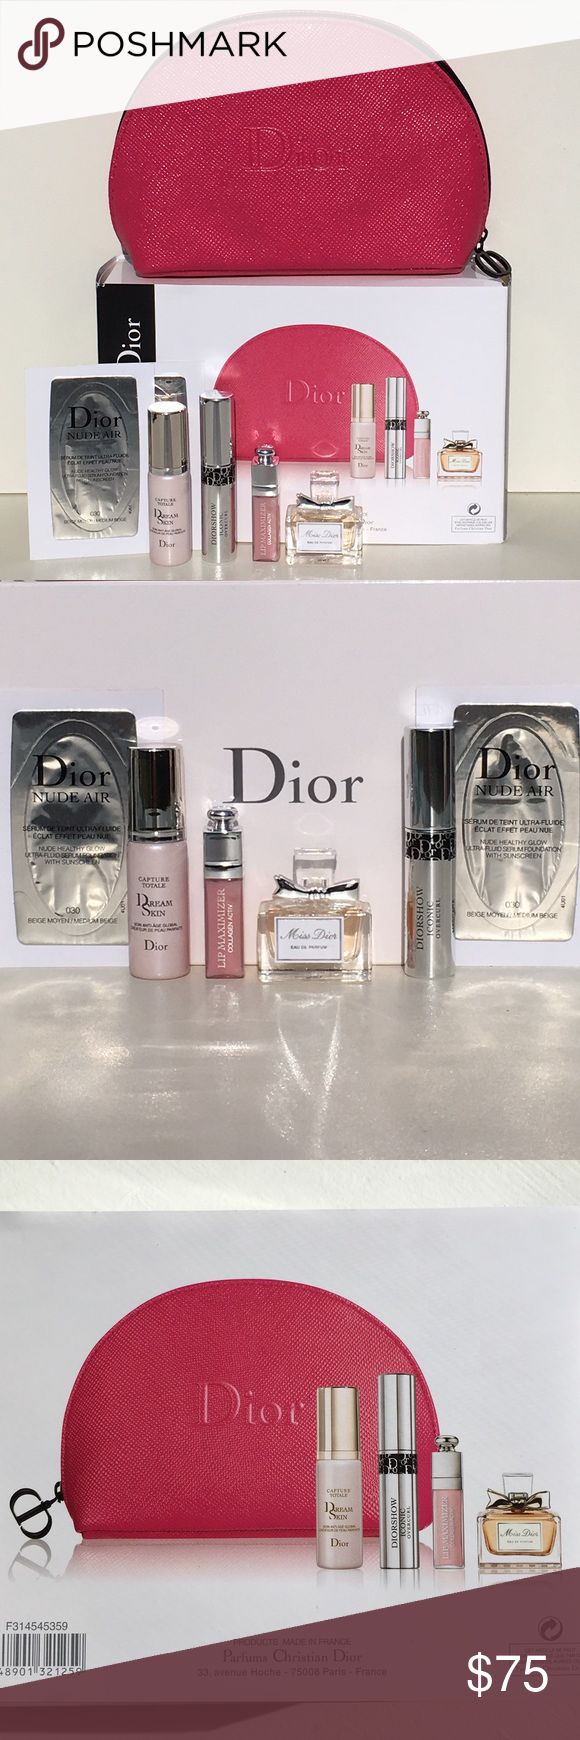 Baby Gift Set Dior : The best dior gift set ideas on cheap fur